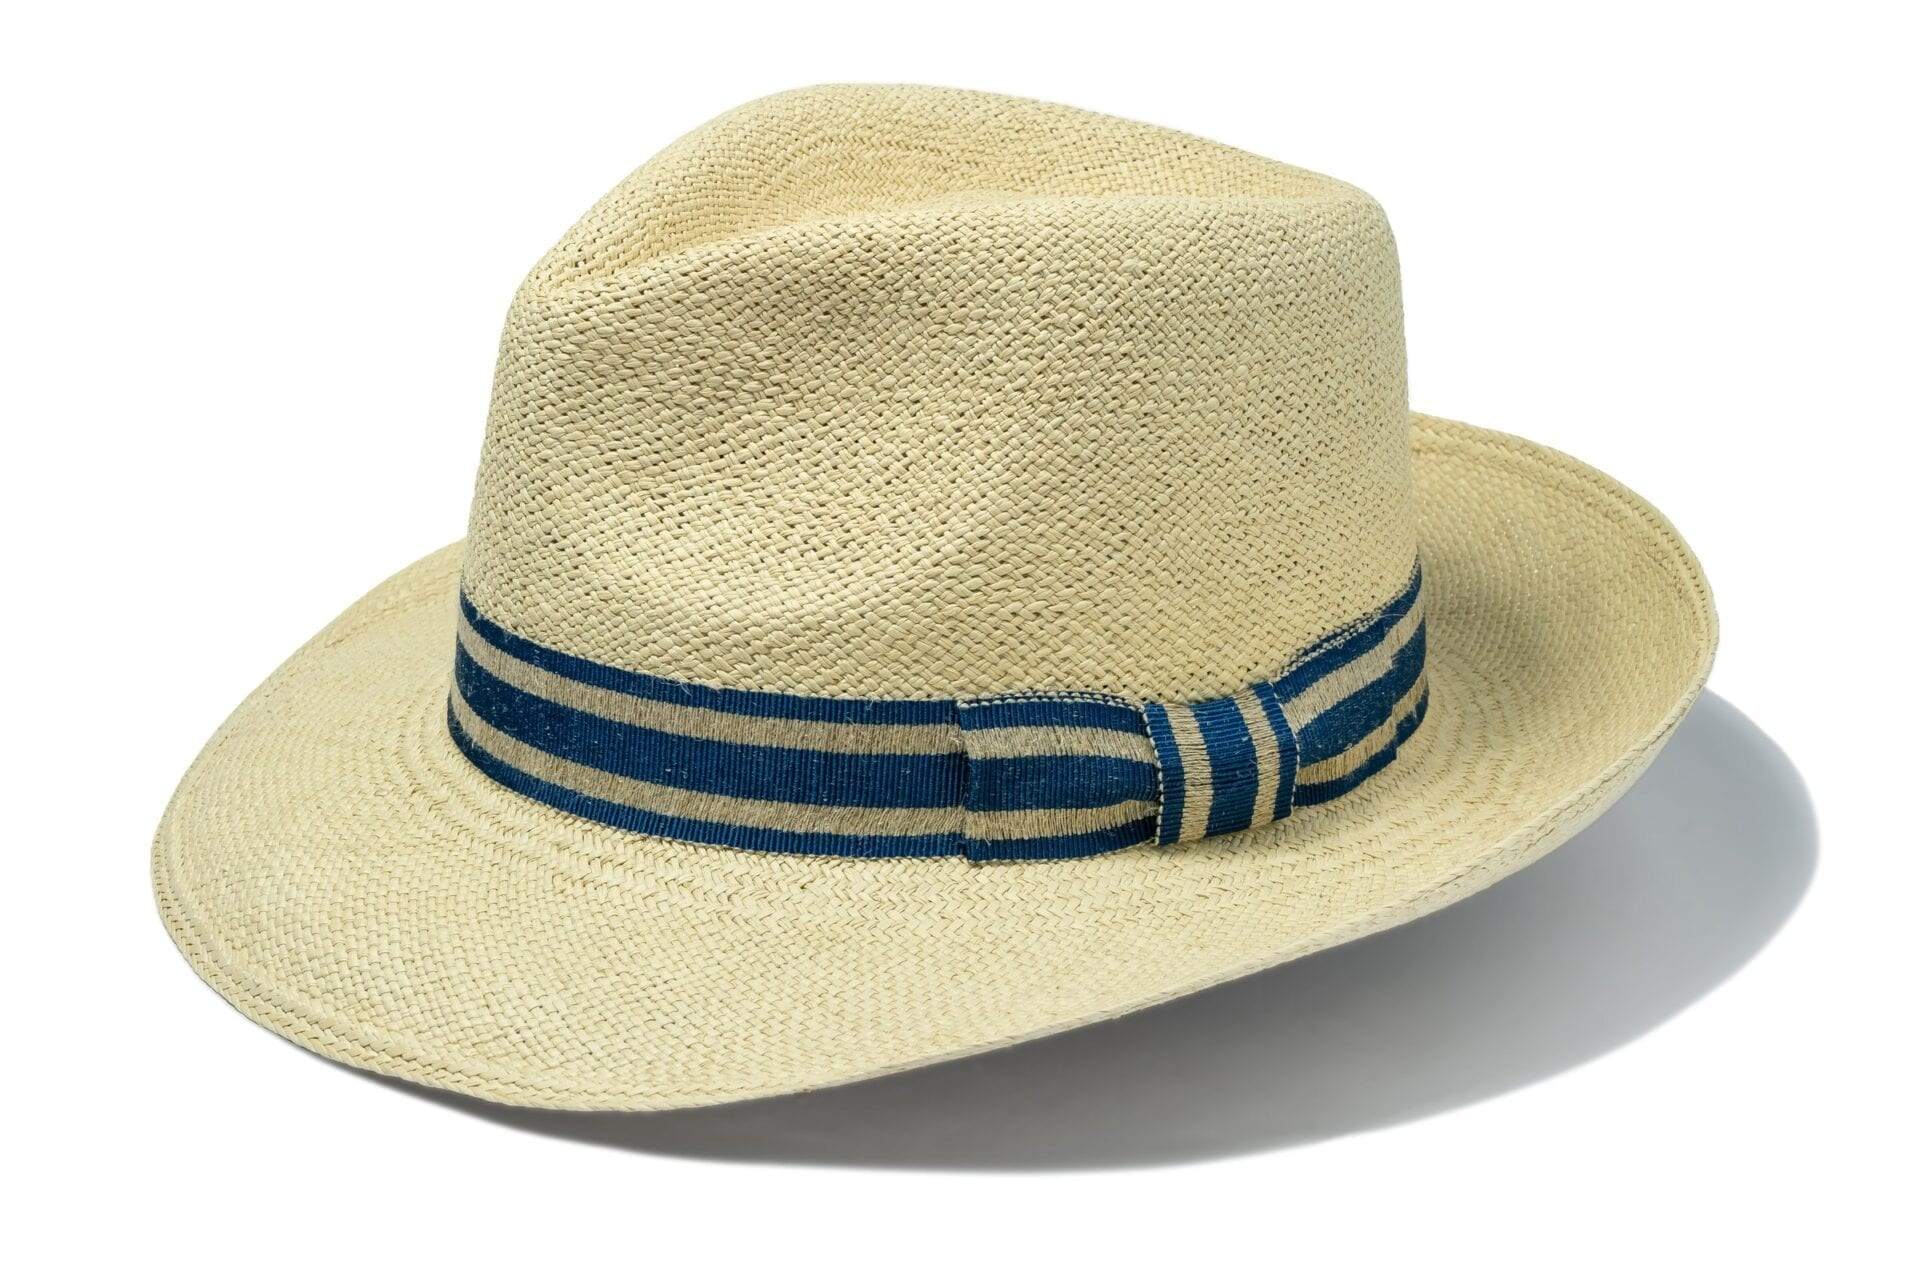 Men's_rollable_panama_hat_with_handmade_band